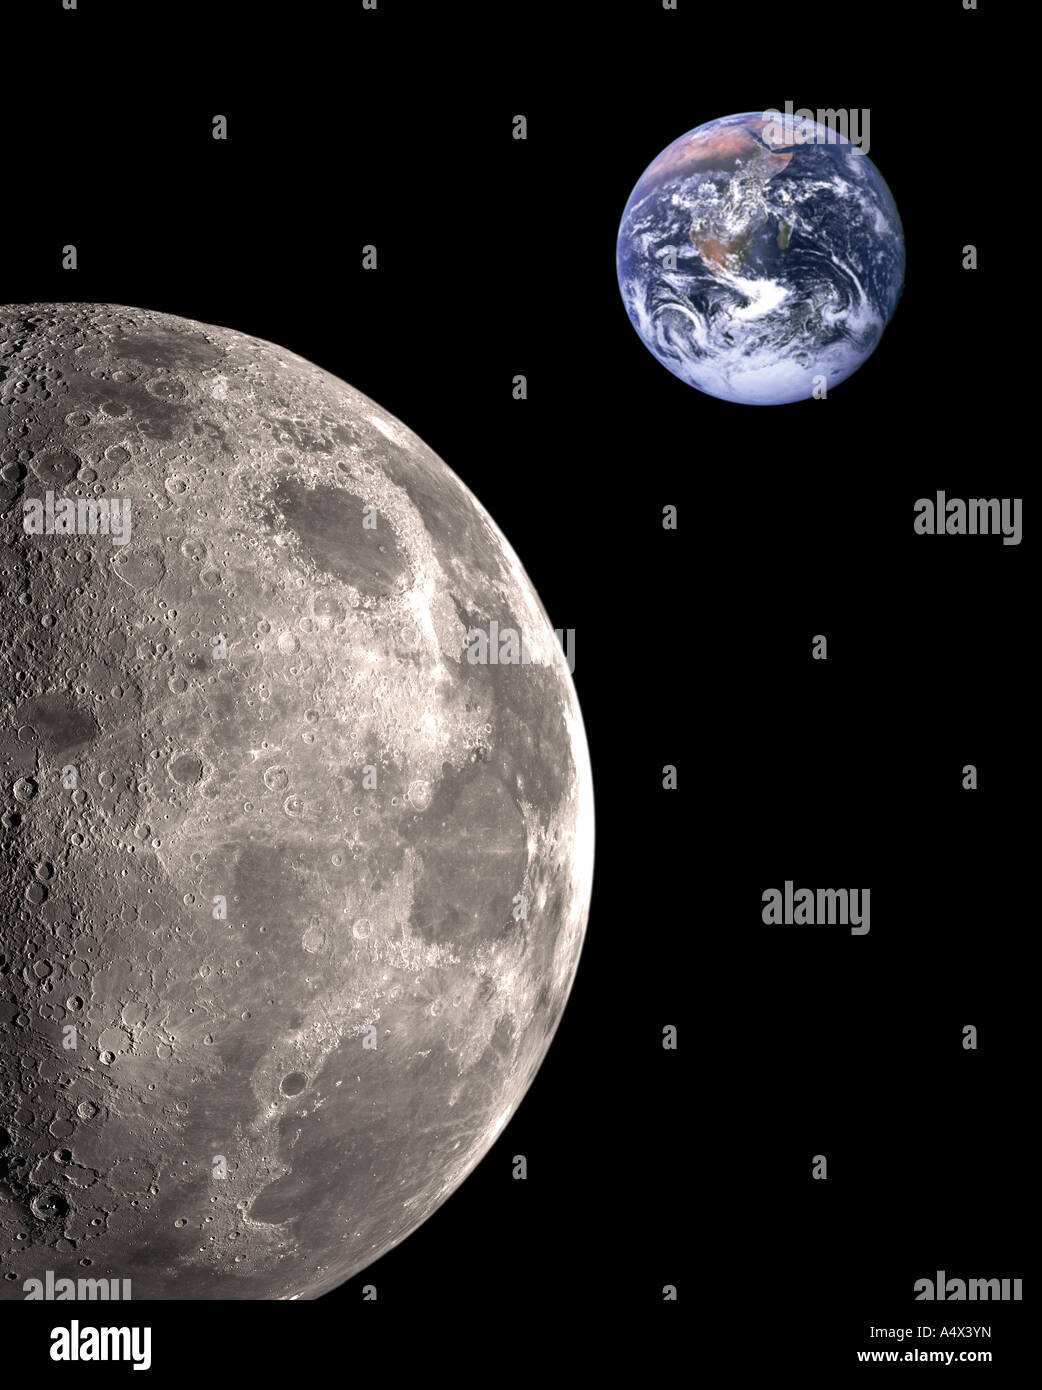 Moon Earth Nasa Stock Photos & Moon Earth Nasa Stock